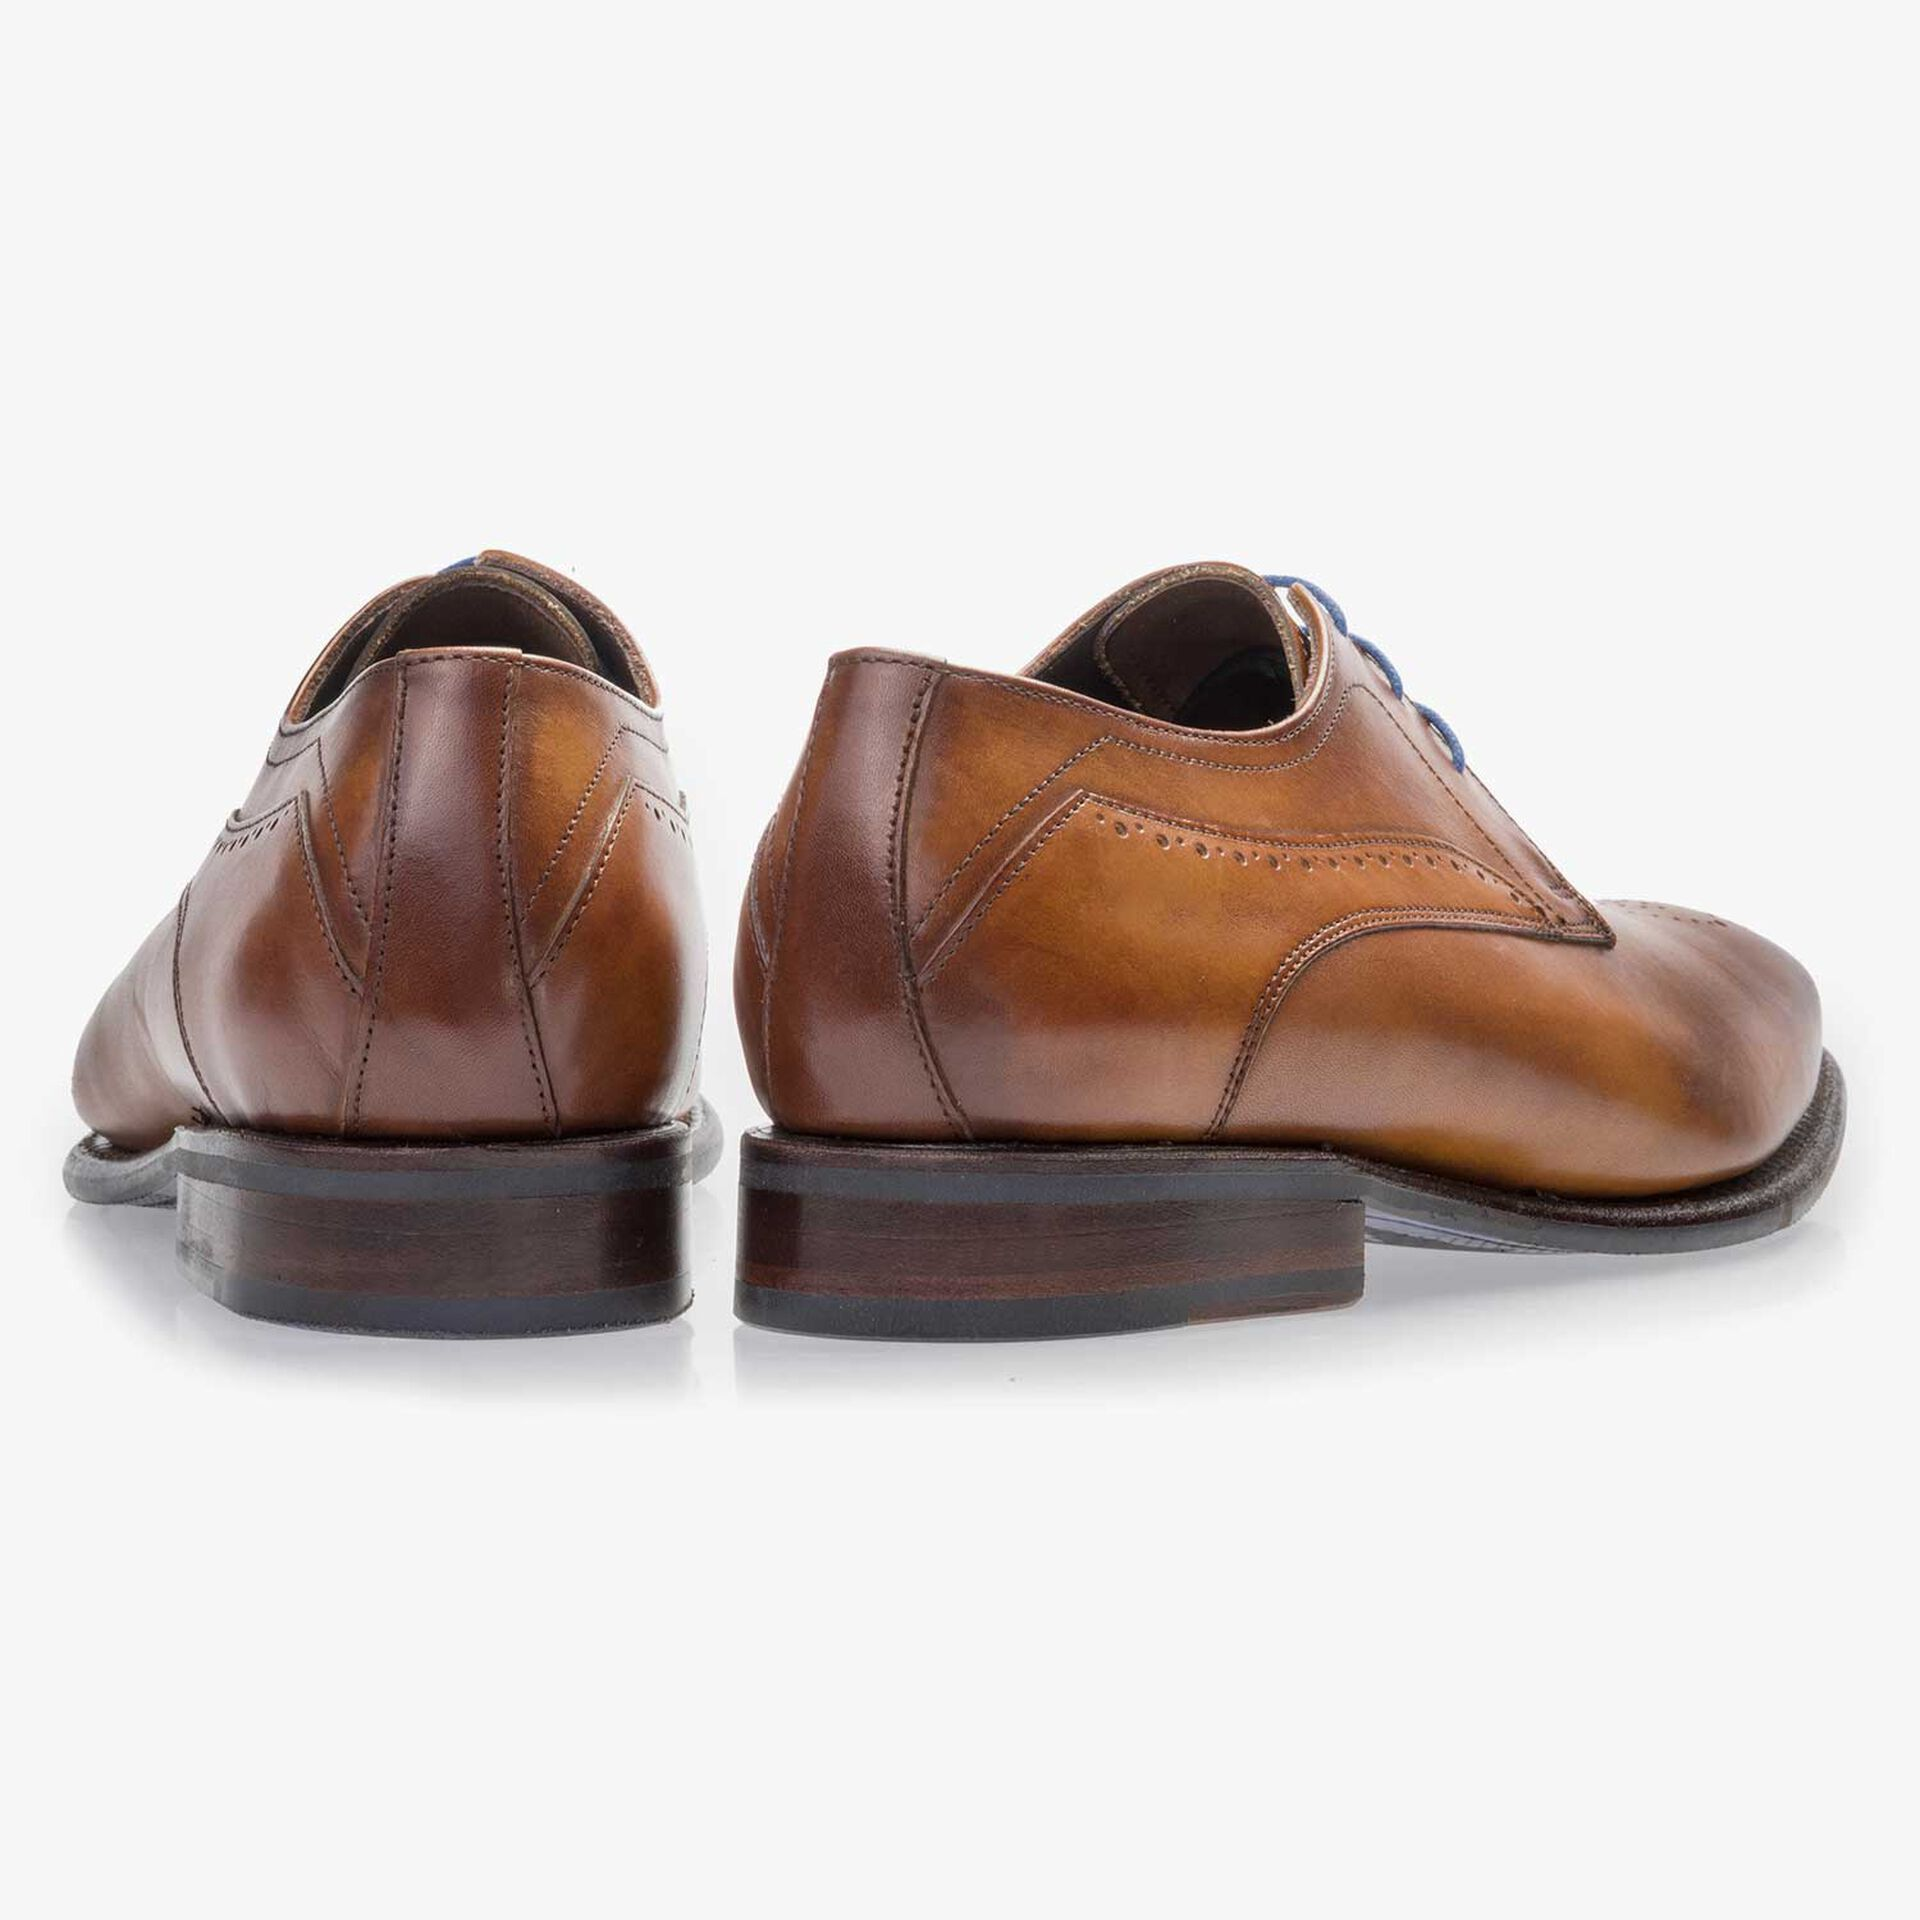 Cognac-coloured, perforated leather lace shoe